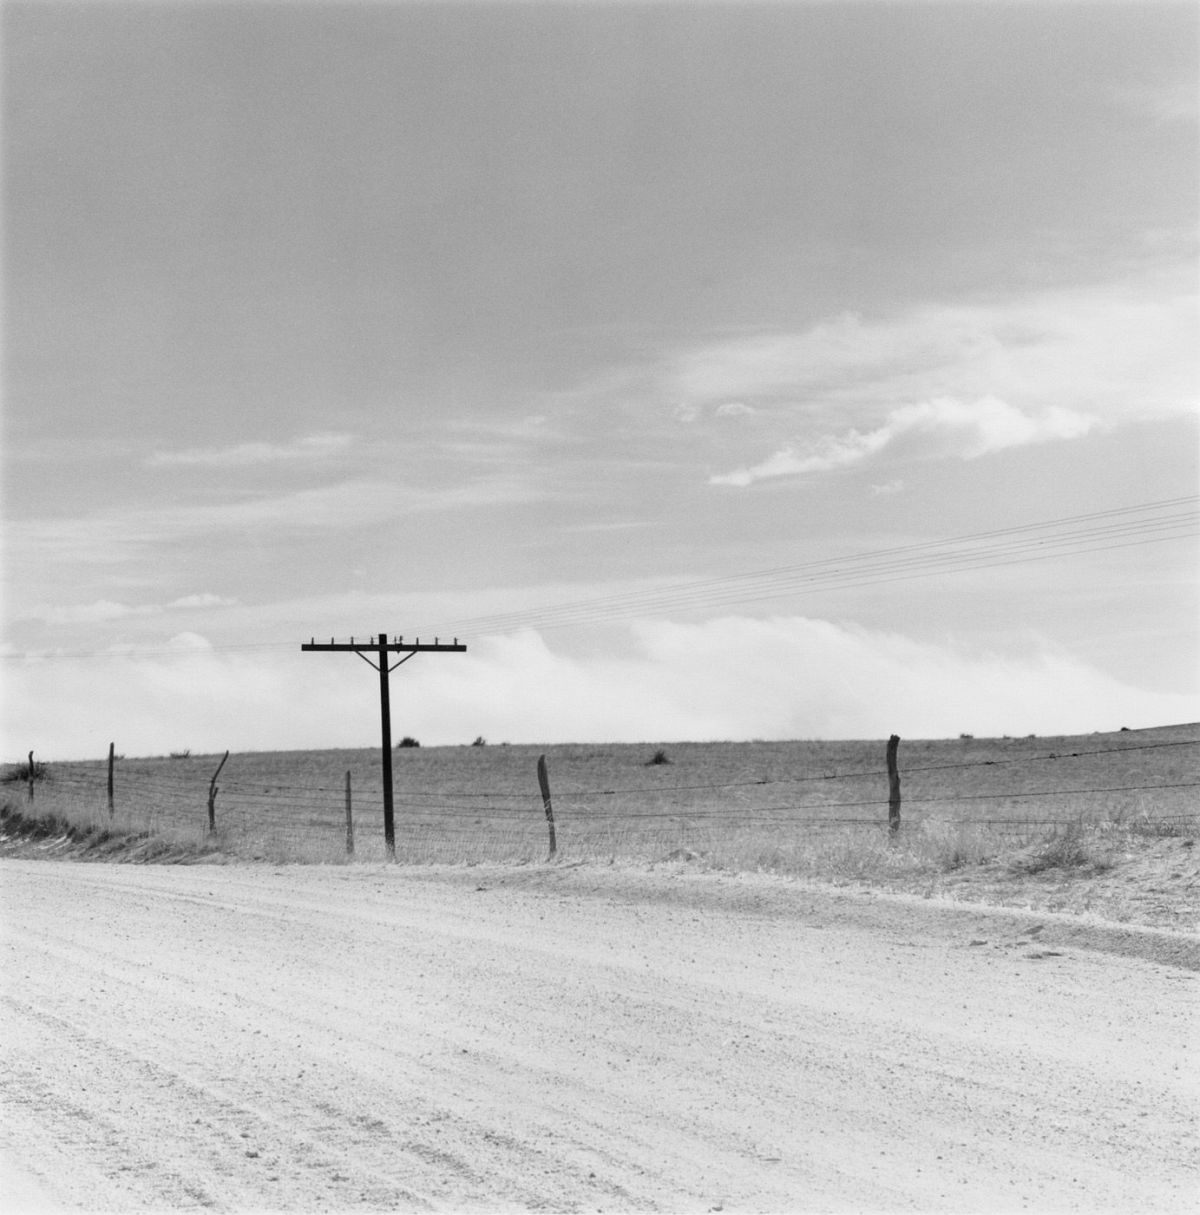 Near Peyton, Colorado, 1969